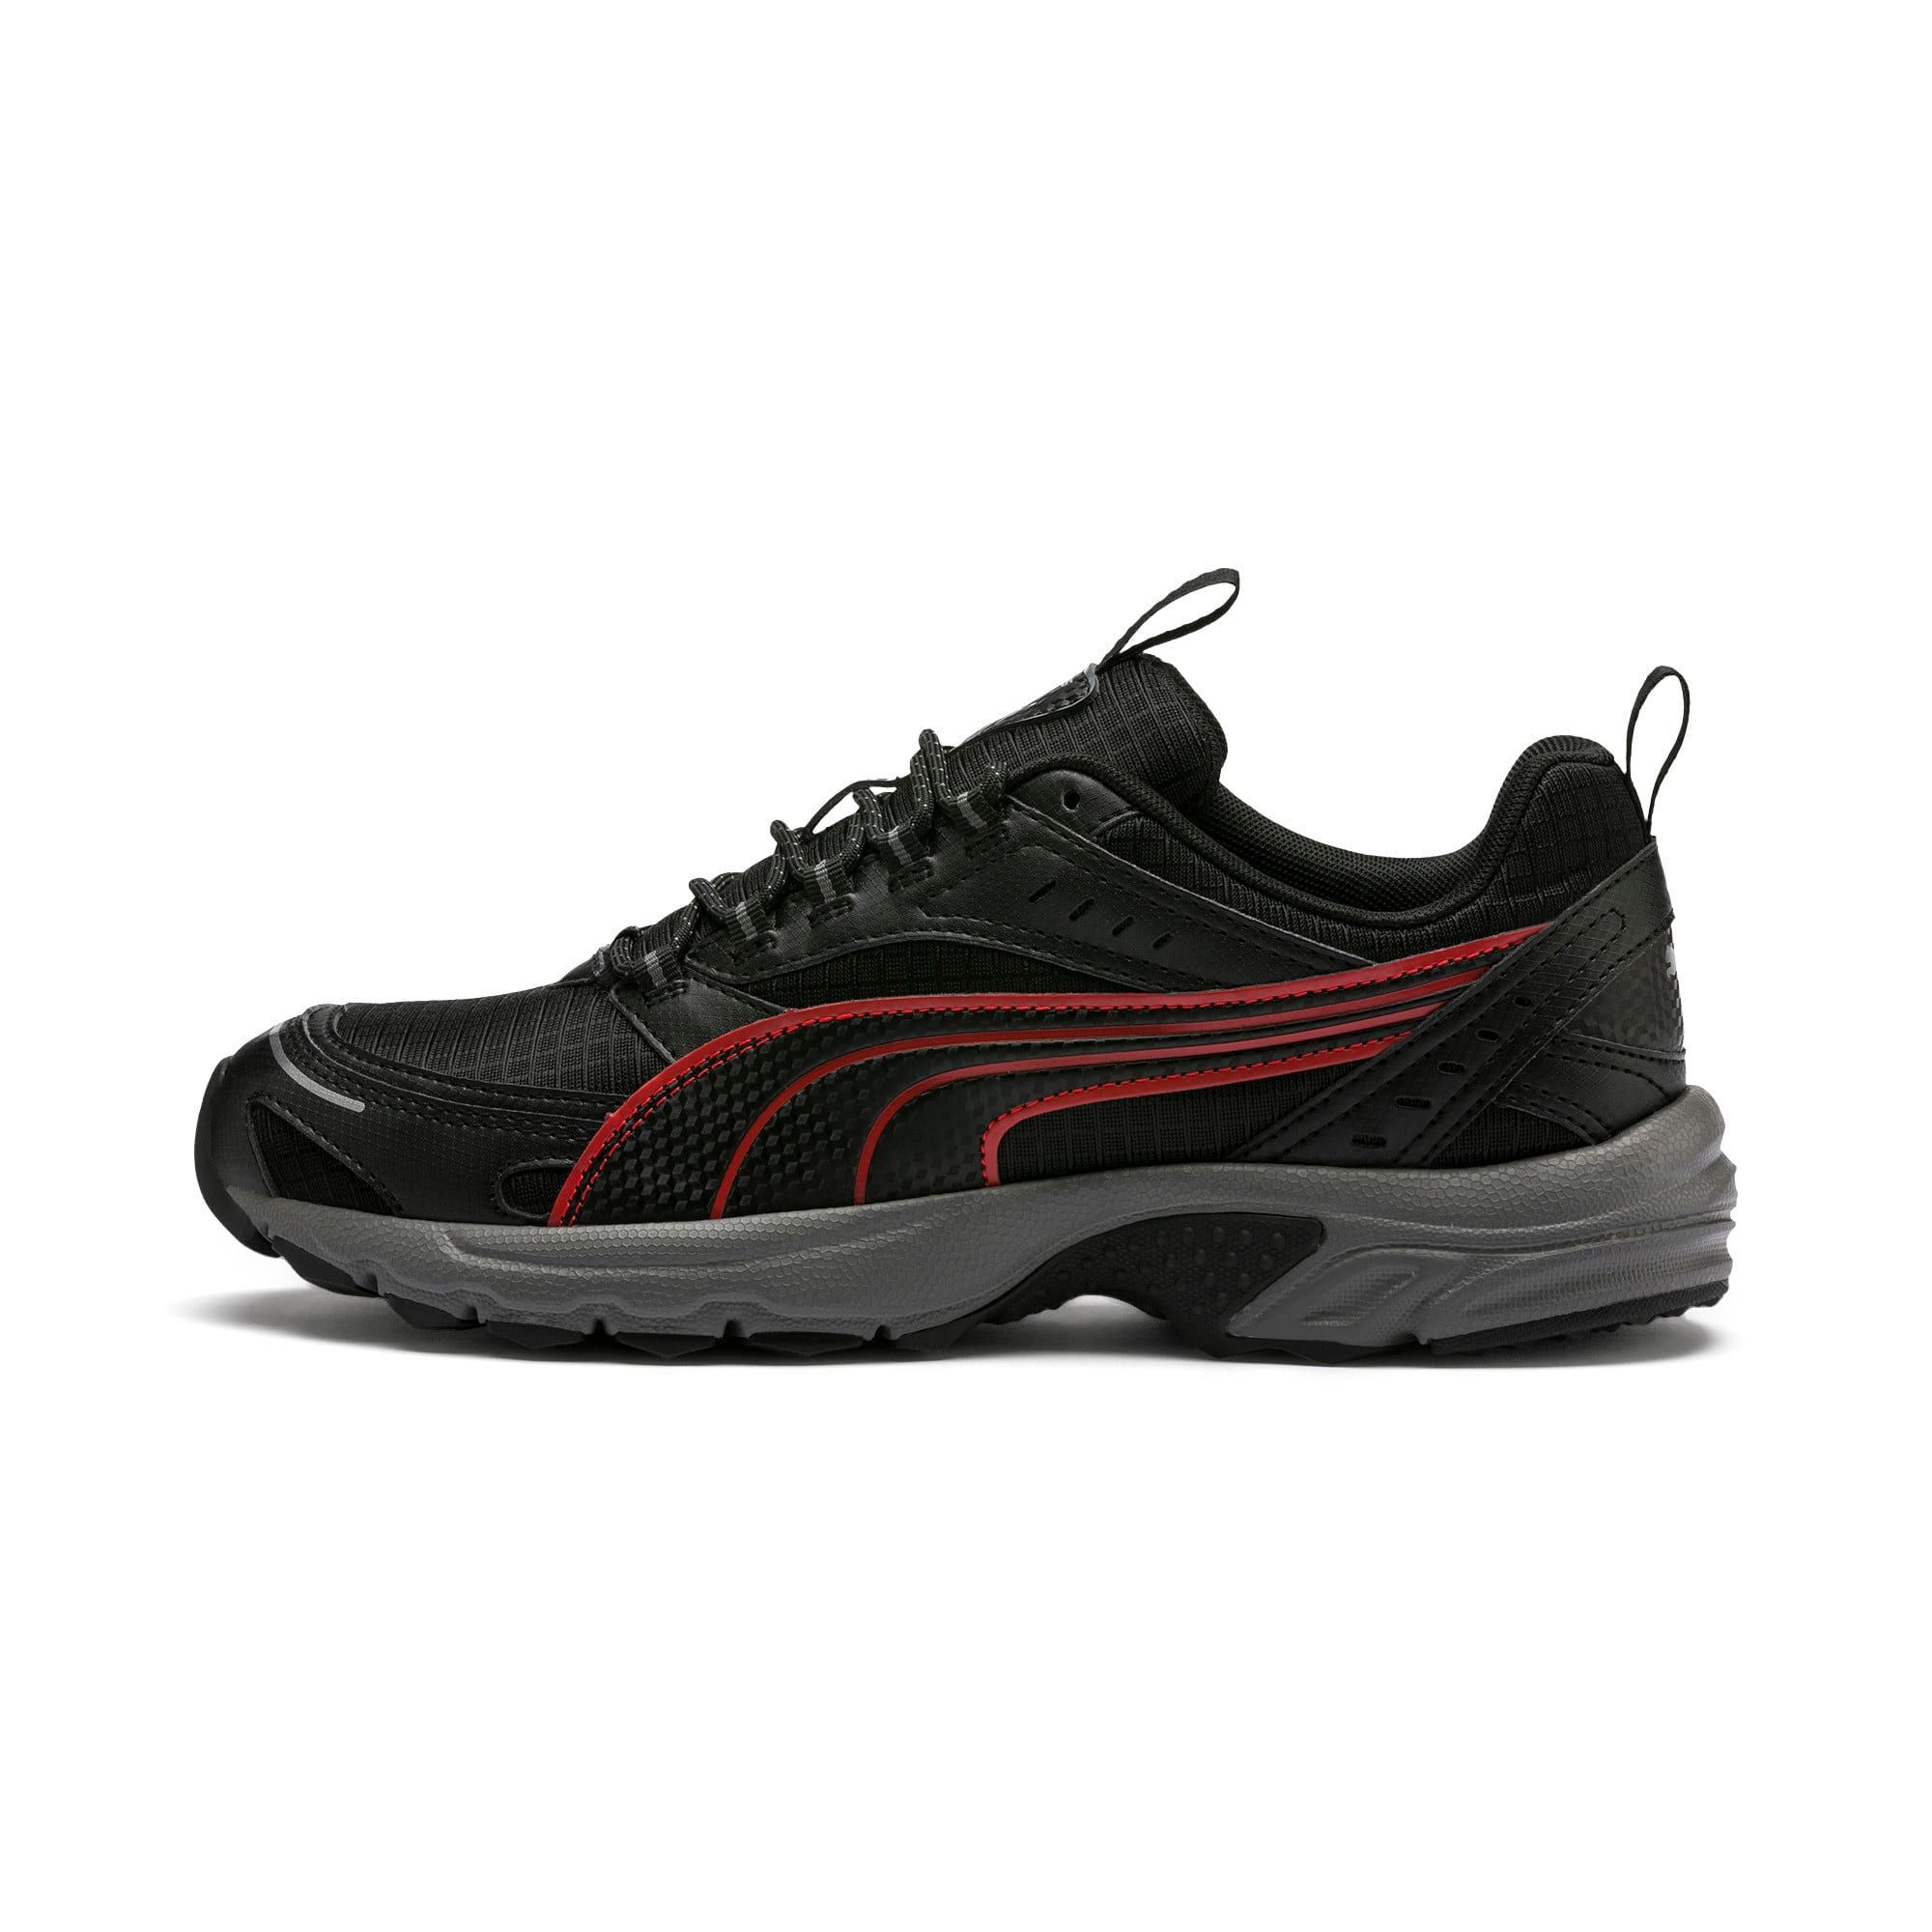 Thumbnail 1 of Axis Trail Sneakers, Black-High Risk Red-Silver, medium